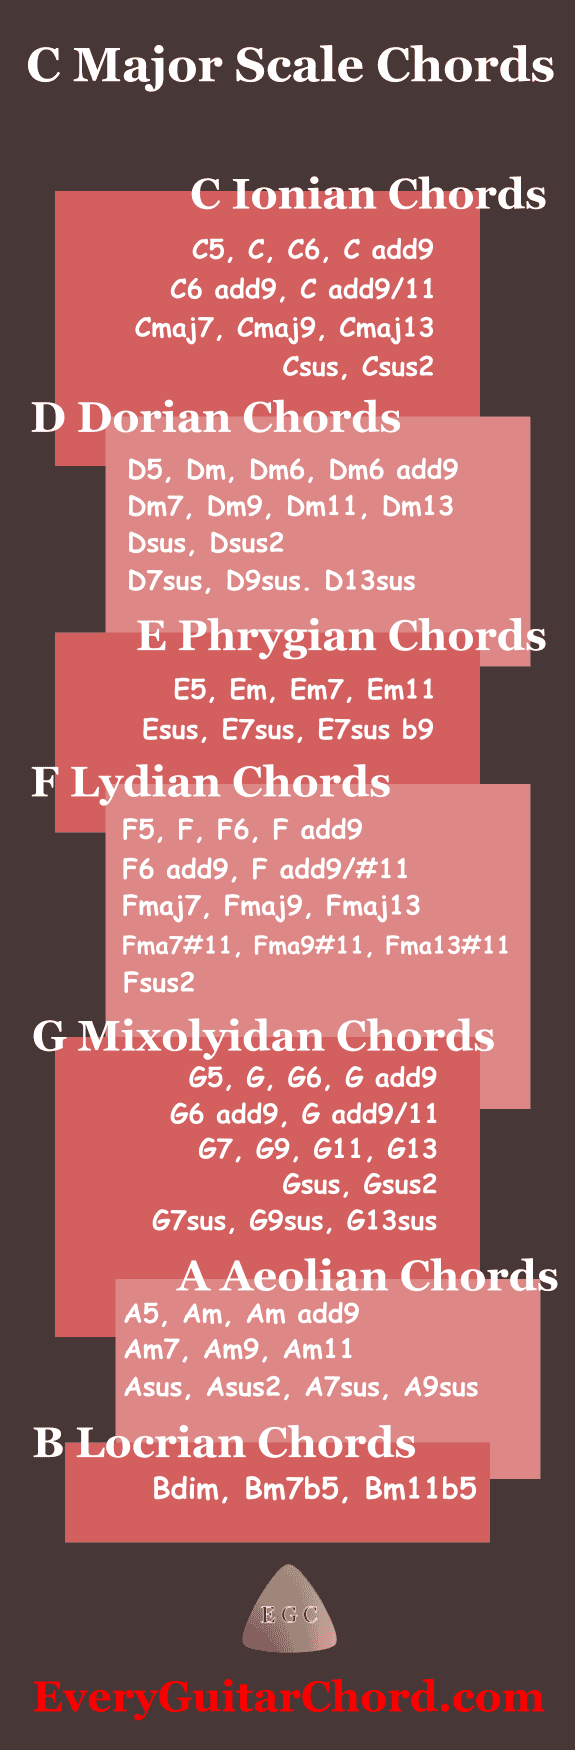 C major scale chords infographic